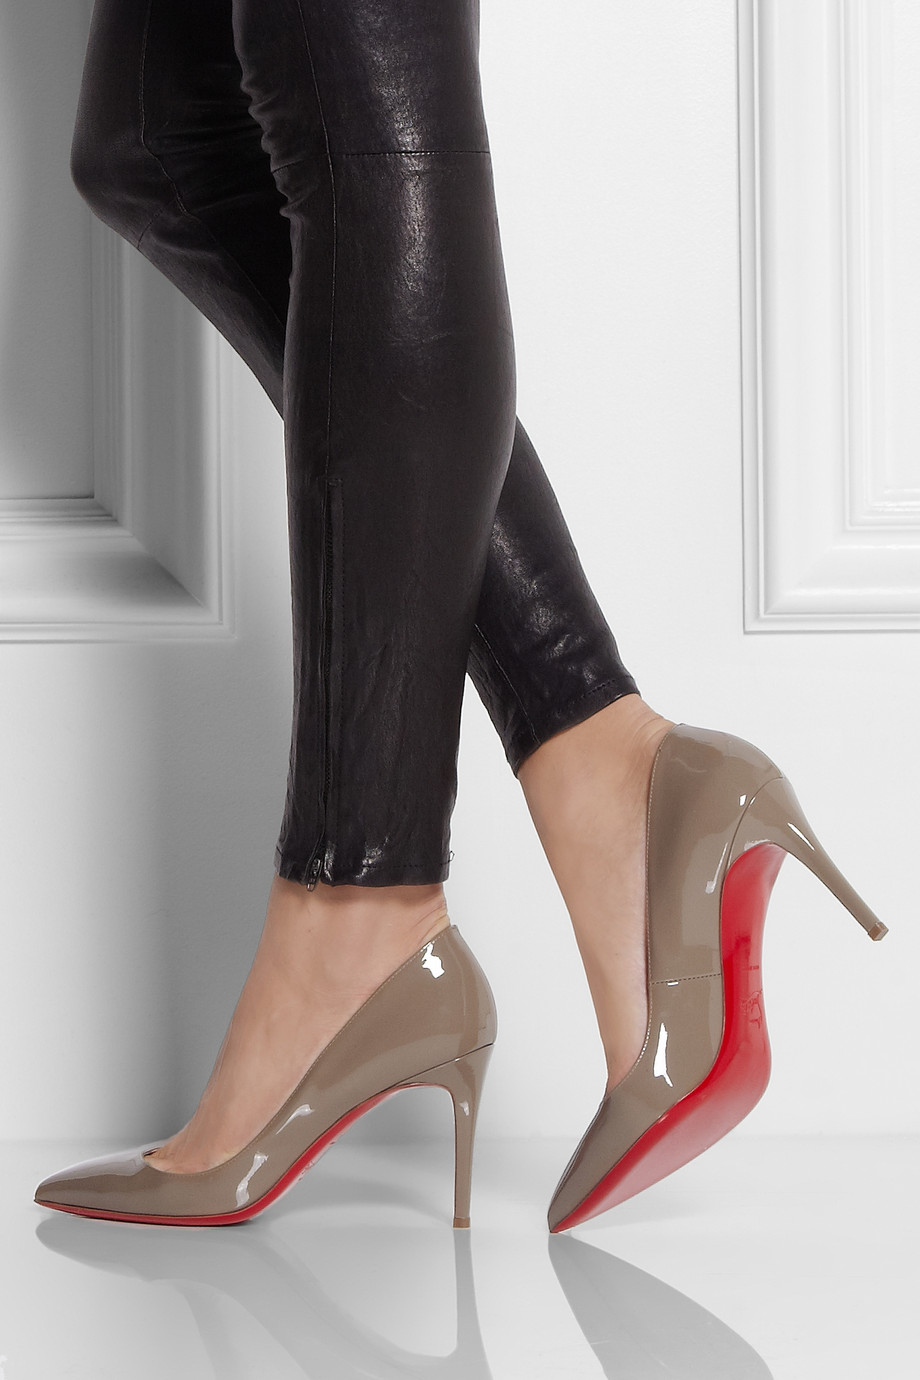 christian louboutin 85mm pumps